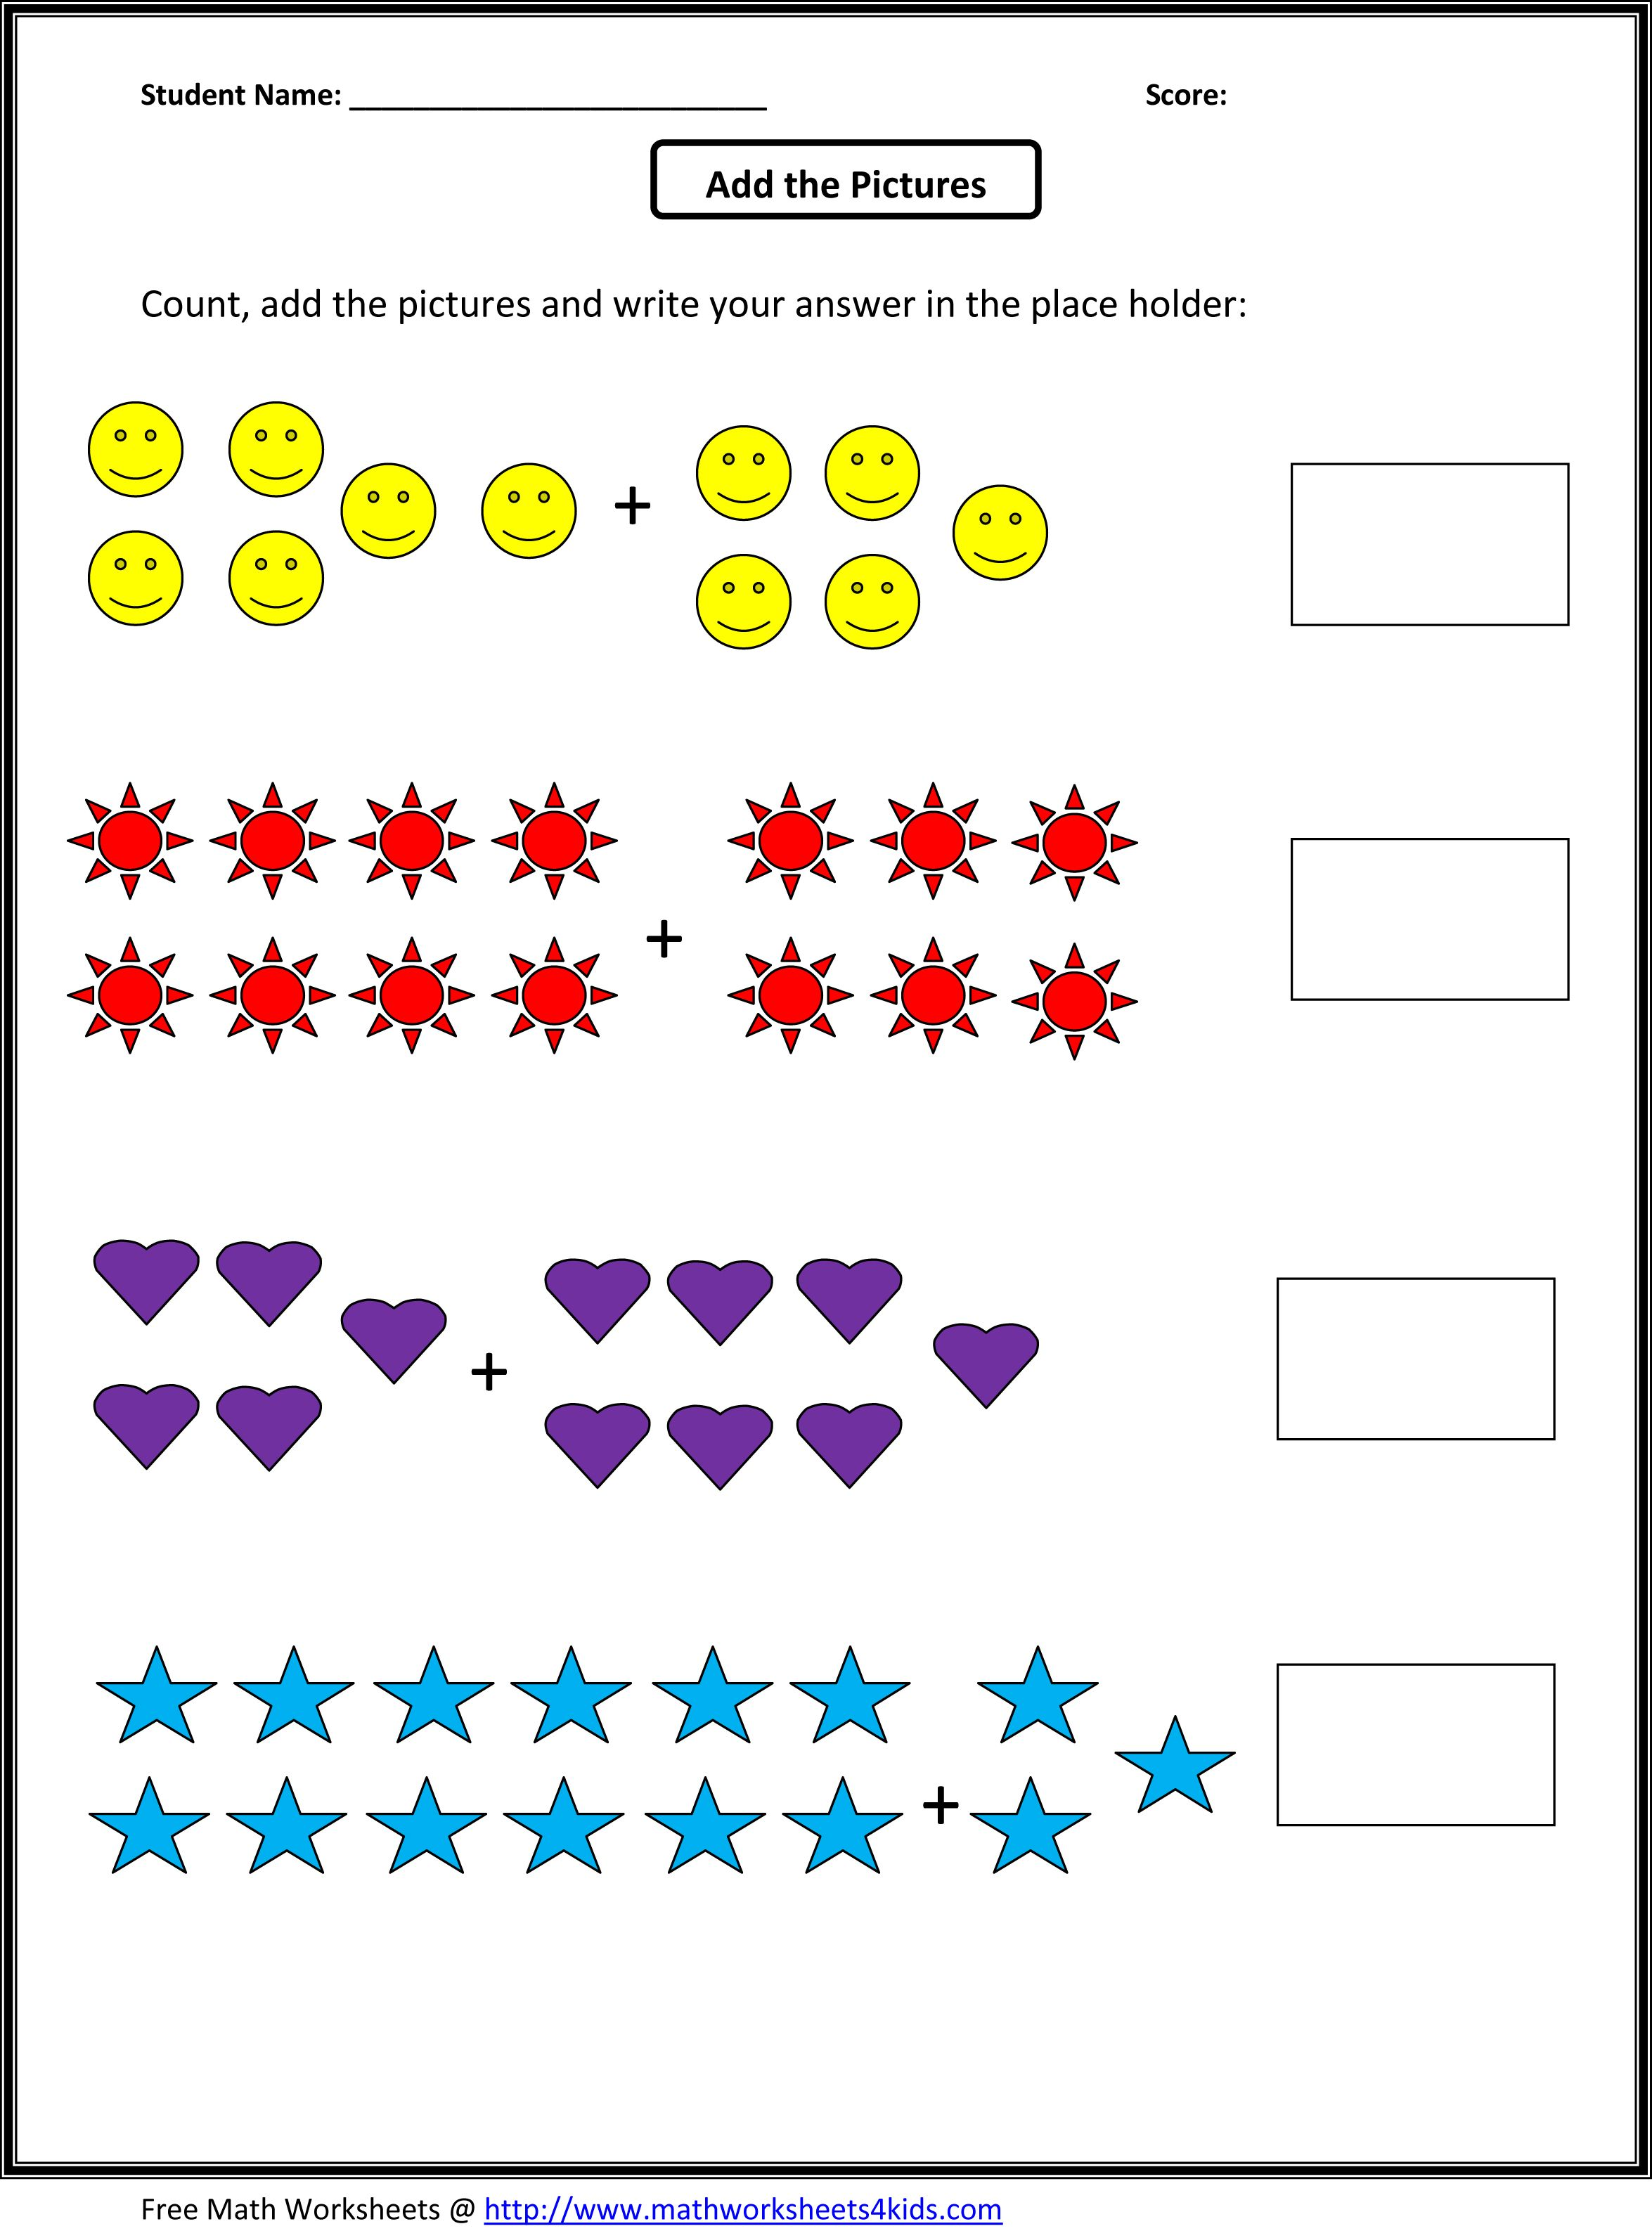 grade 1 addition math worksheets – Worksheets Work Math